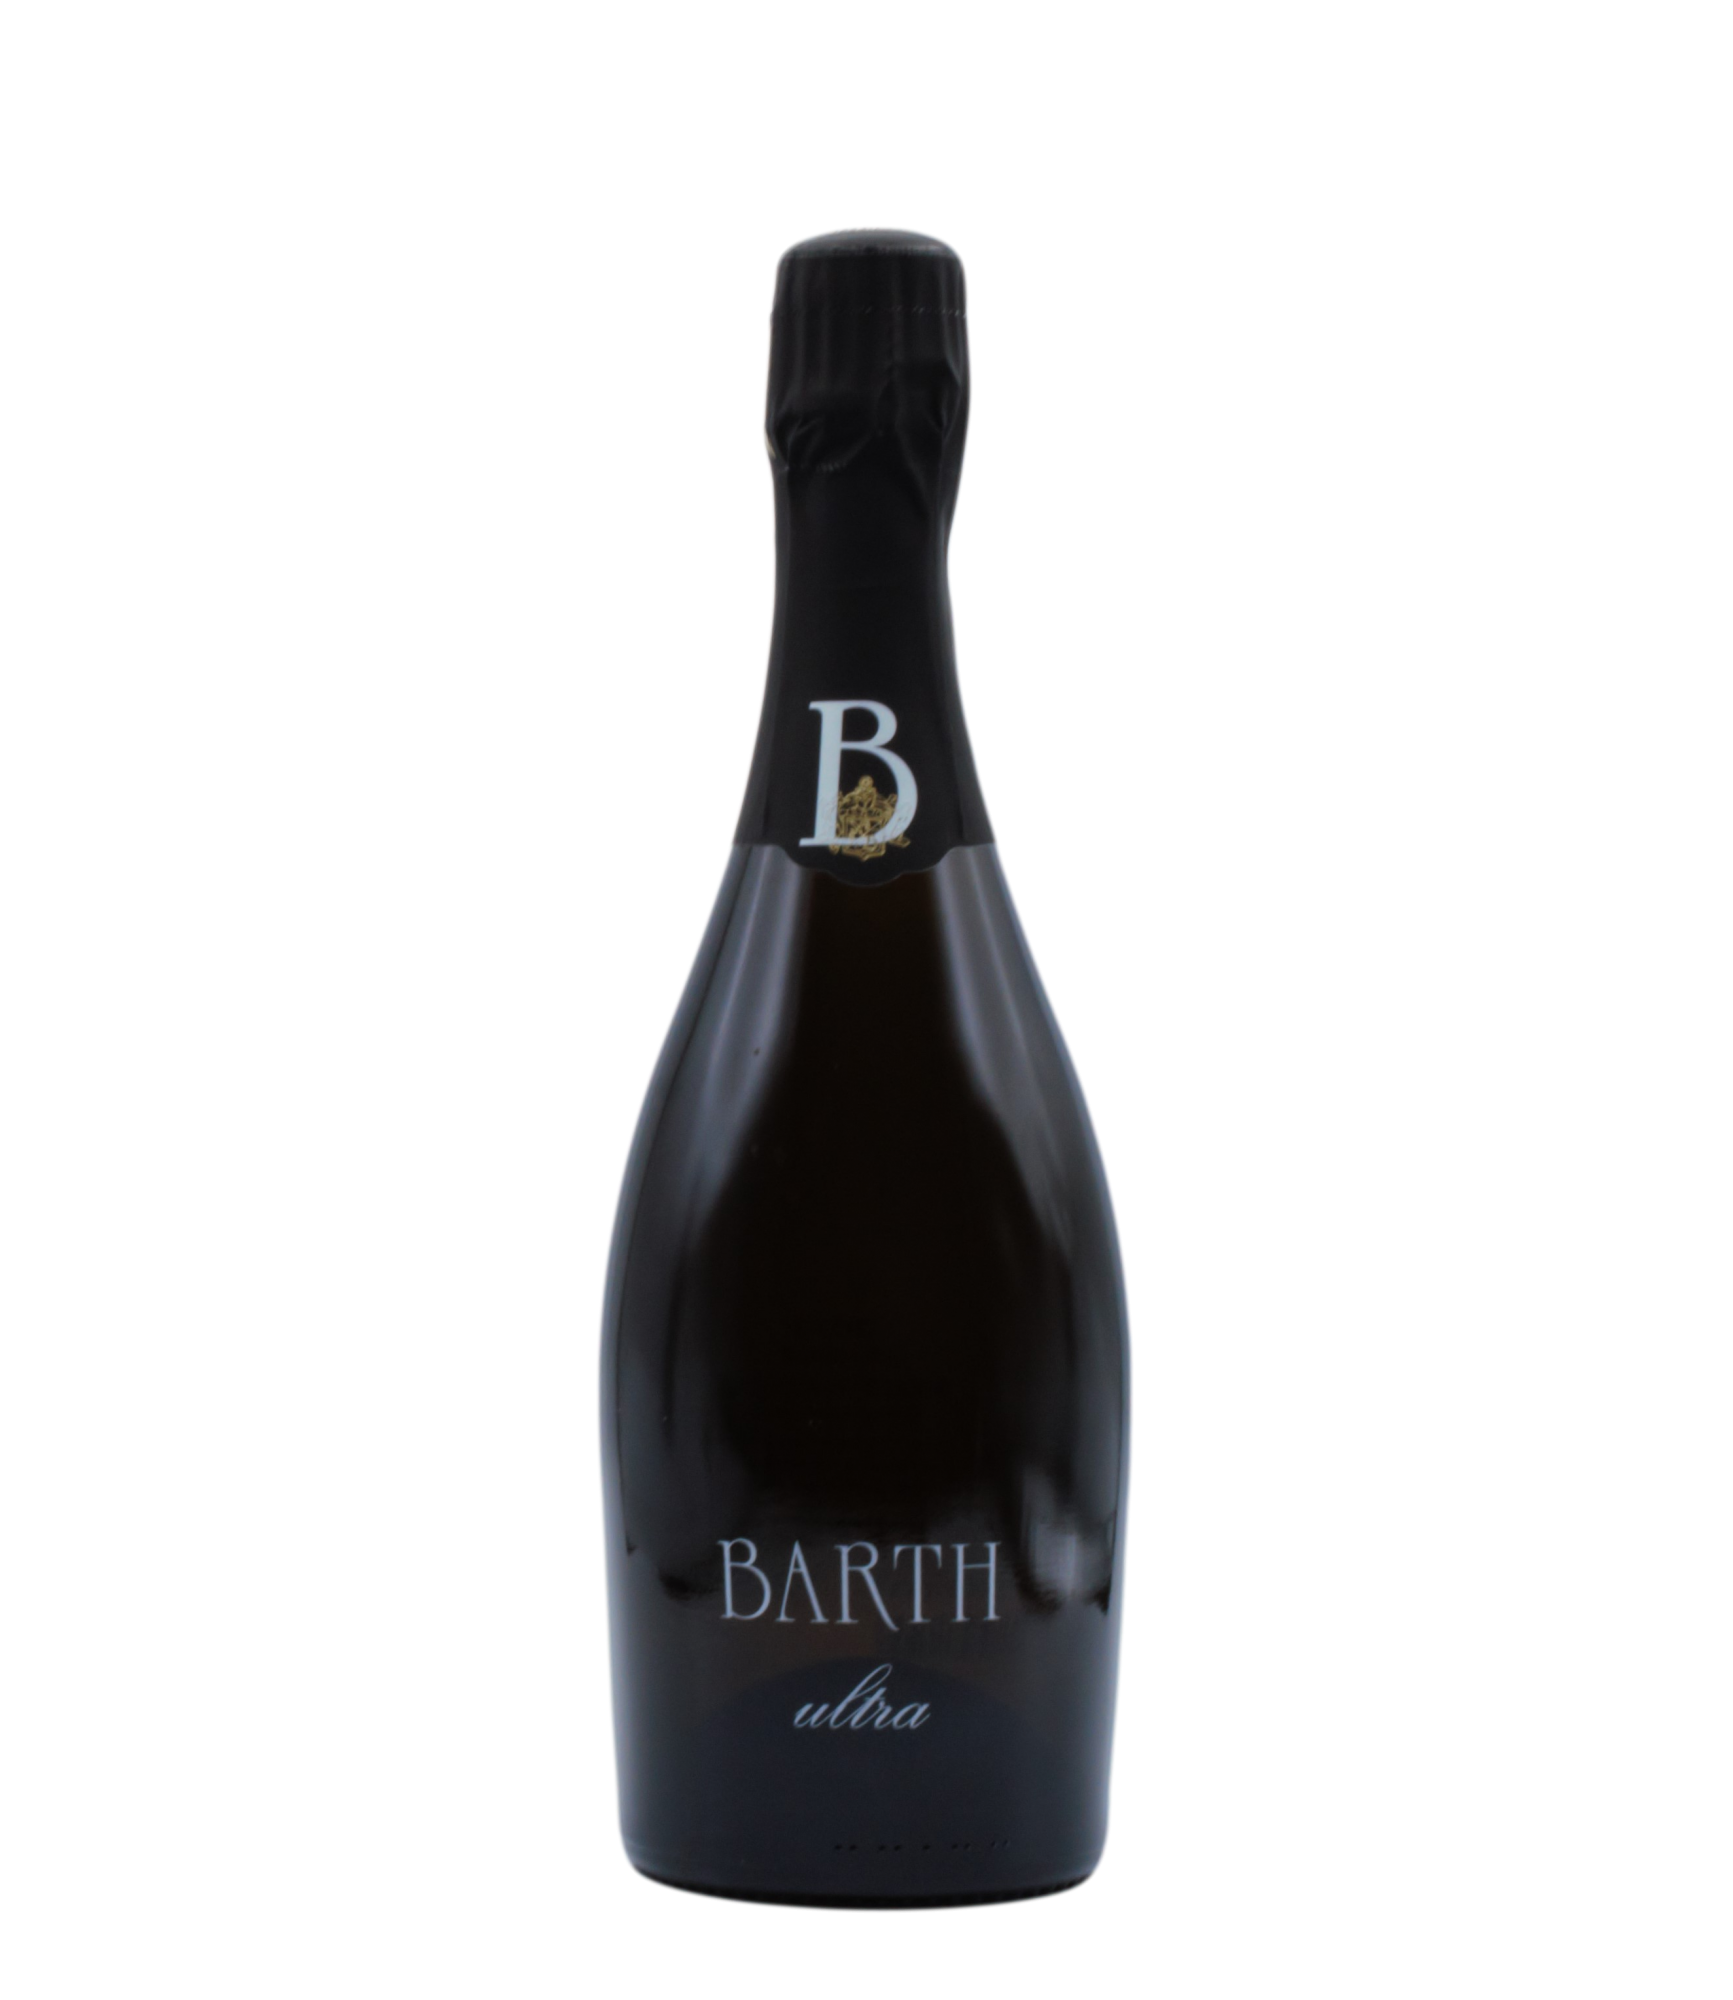 2013 Barth Sekt Ultra Pinot Brut Nature